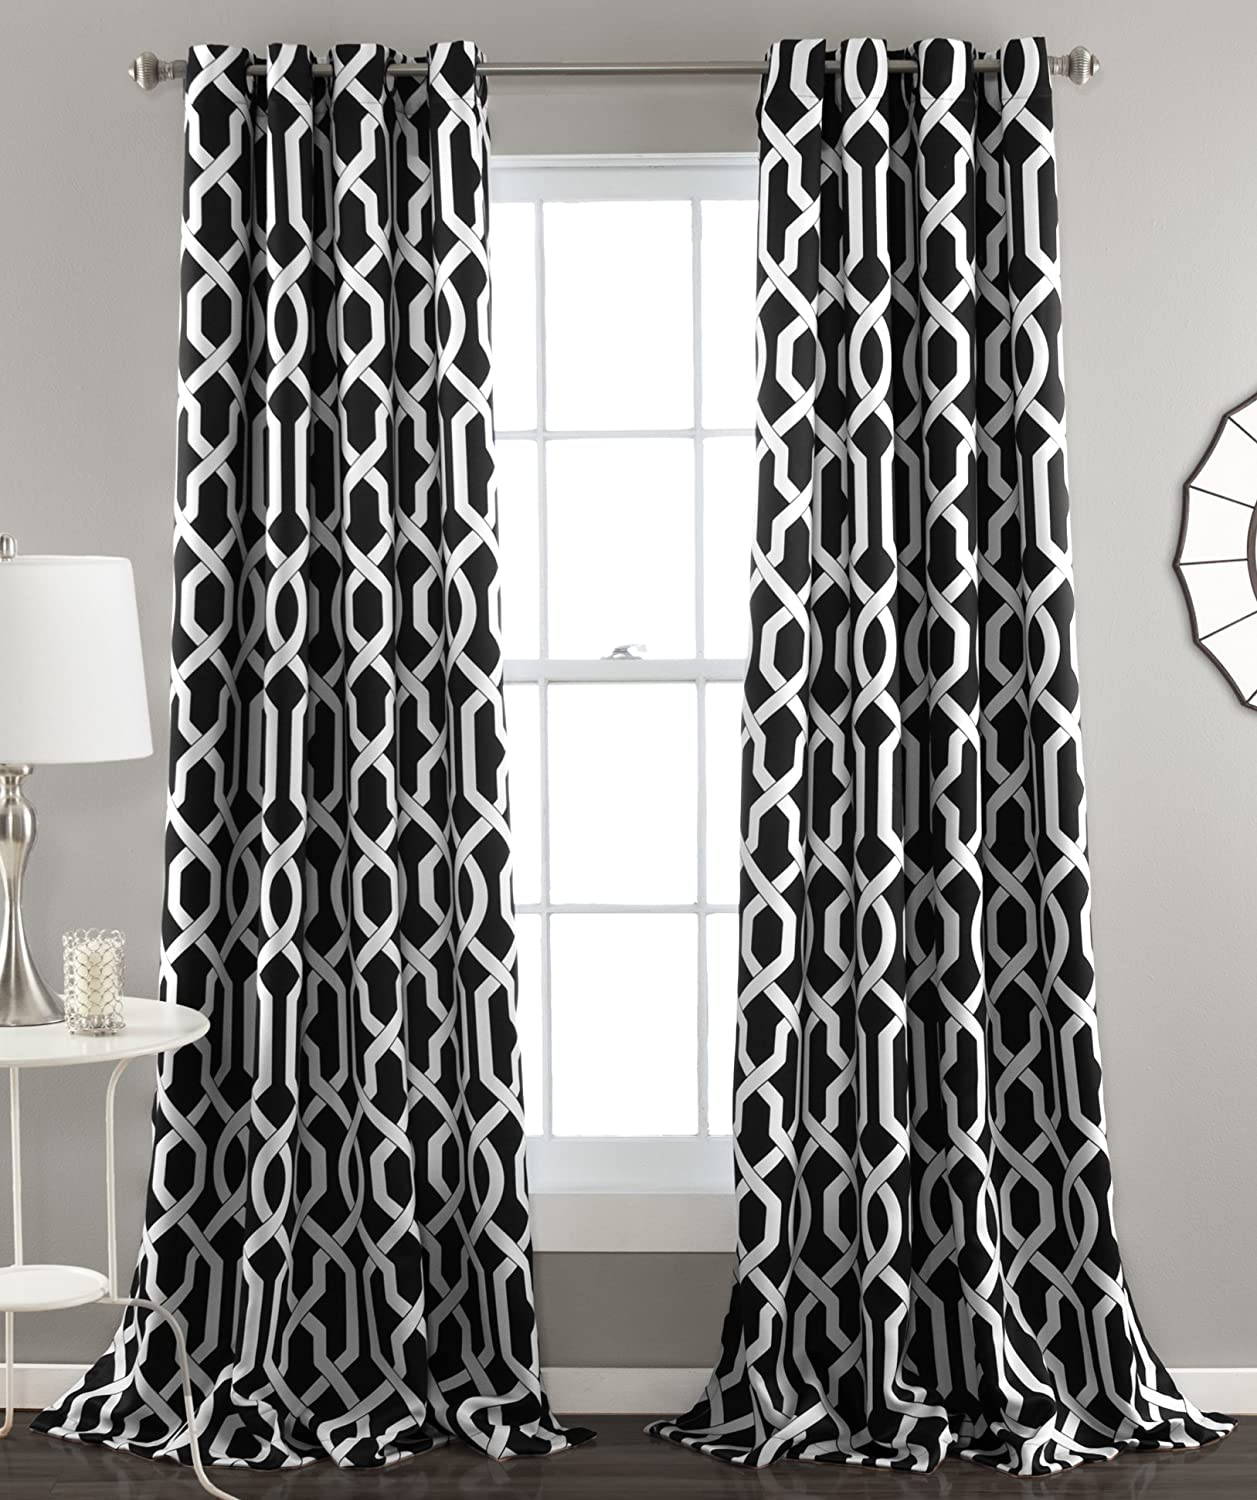 Lush Decor Edward Trellis Room Darkening Window Curtain Panel Pair, 84 inch x 52 inch, Black, Set of 2